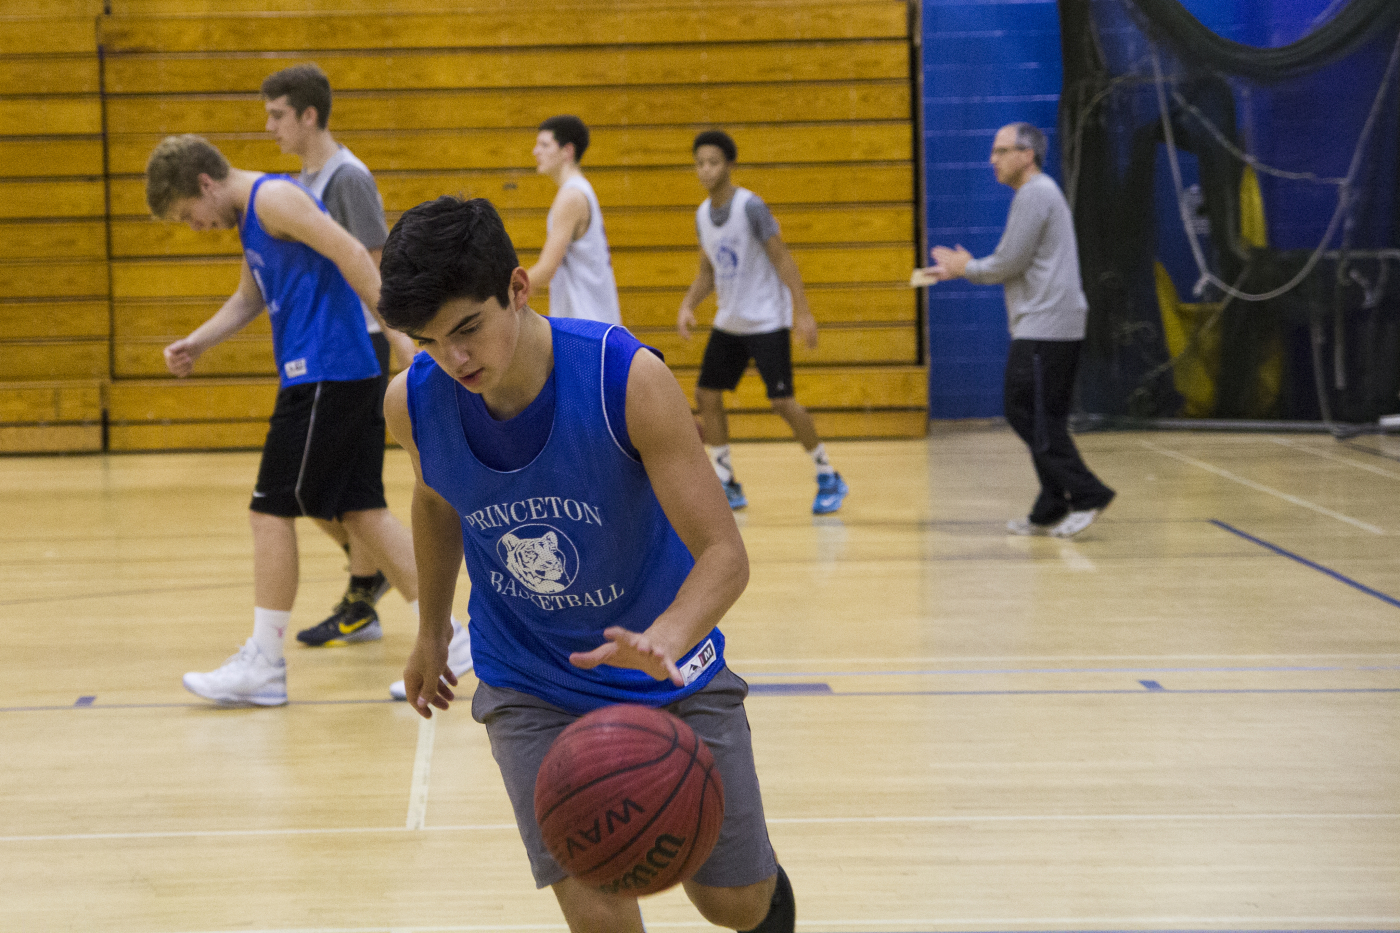 Cristobal Silva '17 and the rest of the team practice daily in the PHS gyms. Photo: Shreya Dandamudi